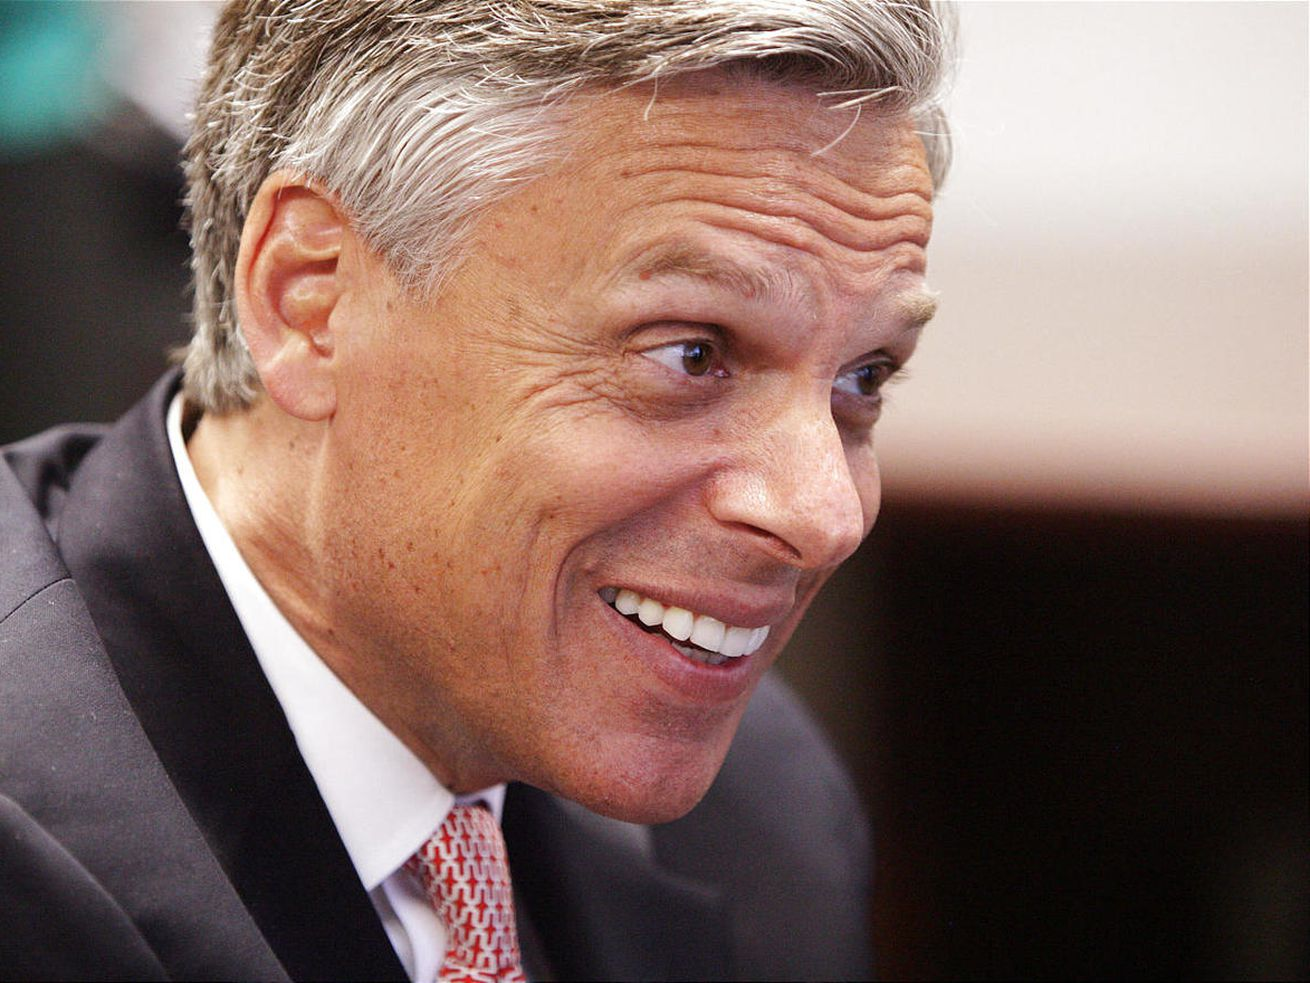 Jon Huntsman says he's taking 'a good look' at running for governor